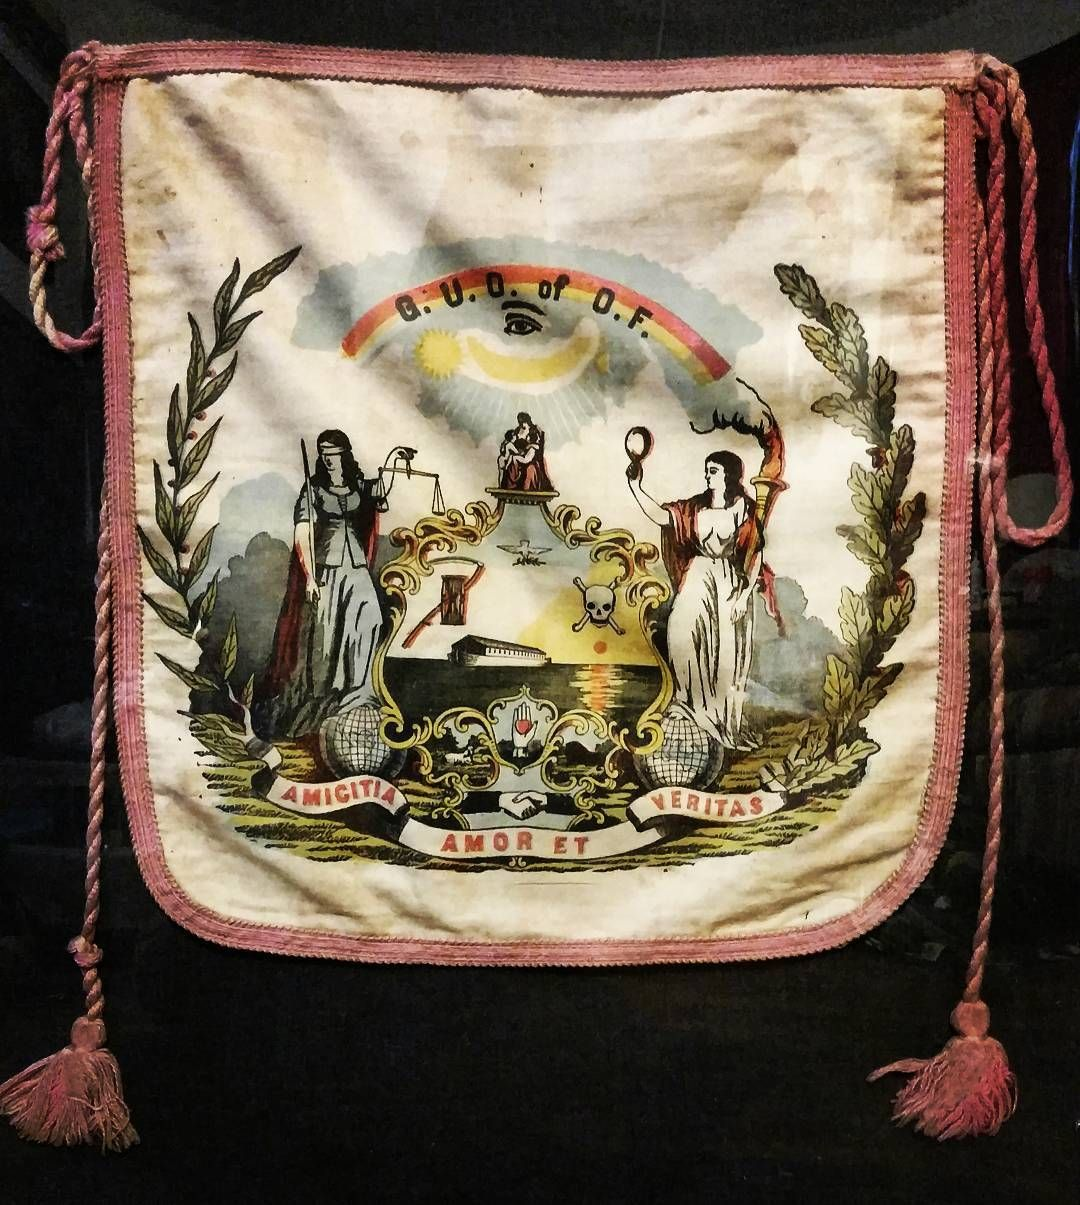 Grand united order of odd fellows ceremonial apron 1845 odd grand united order of odd fellows ceremonial apron 1845 biocorpaavc Image collections